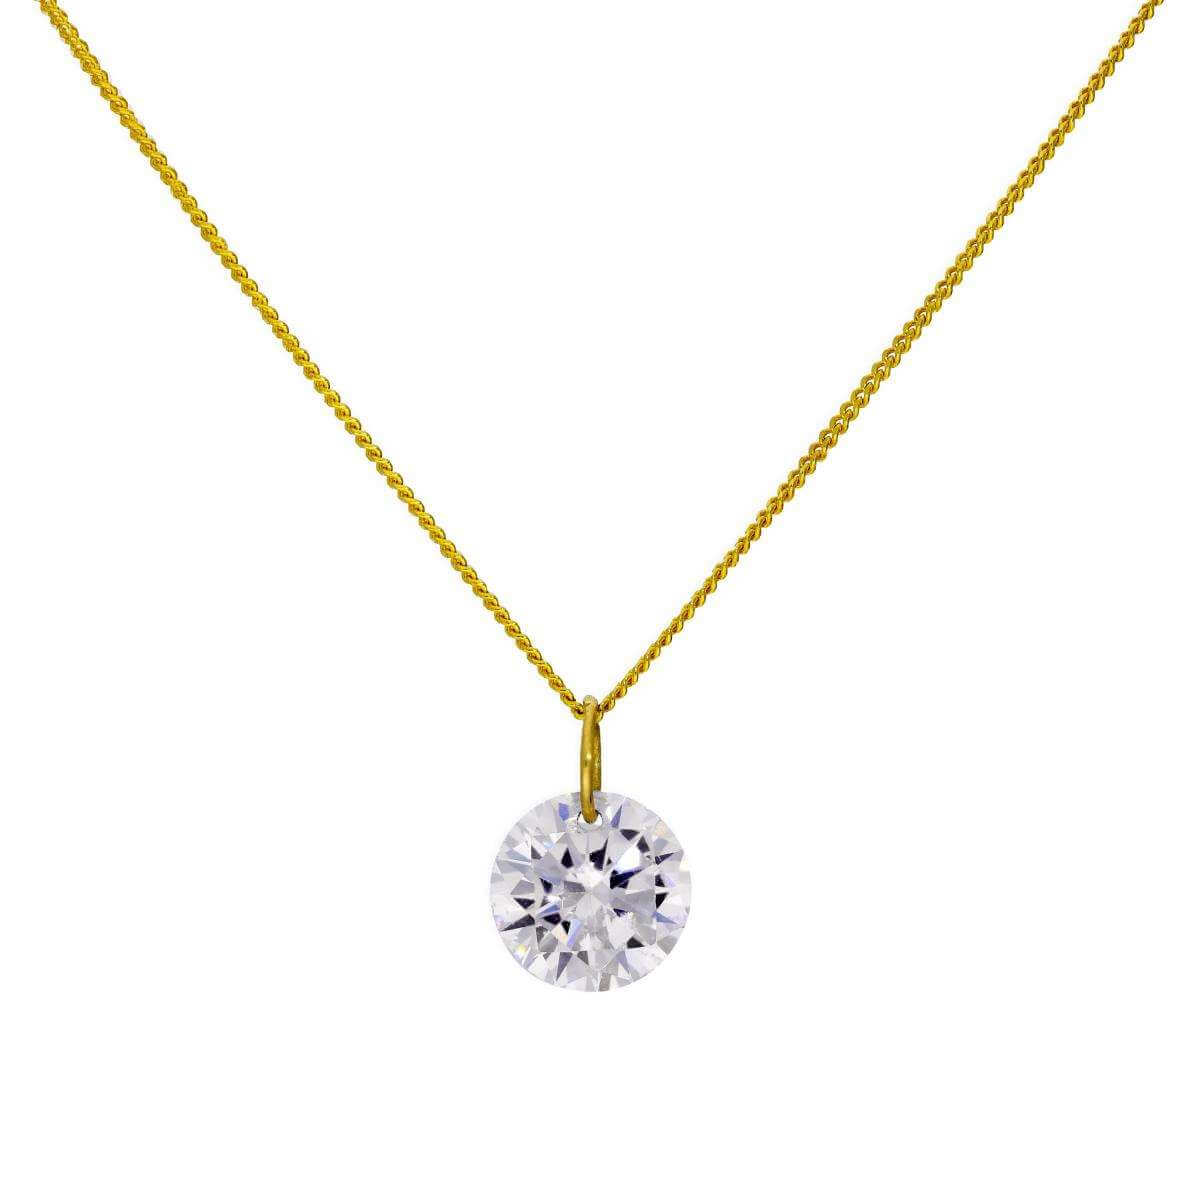 9ct Gold & Large Clear CZ Crystal Pendant Necklace 16 - 20 Inches